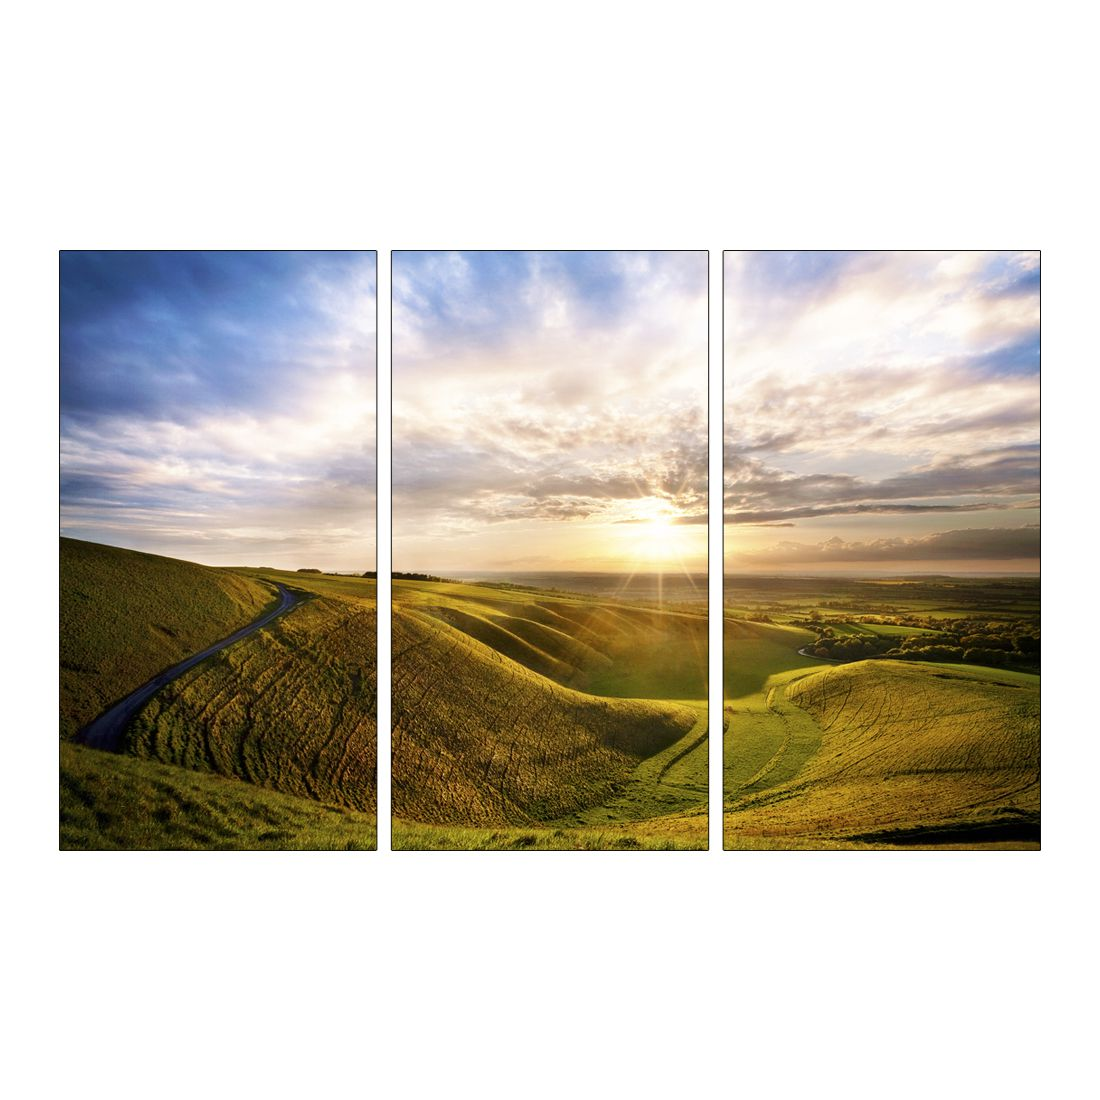 Leinwandbild LOVELY SUNRISE LIGHT  – Abmessung 130 x 80 cm, Gallery of Innovative Art günstig